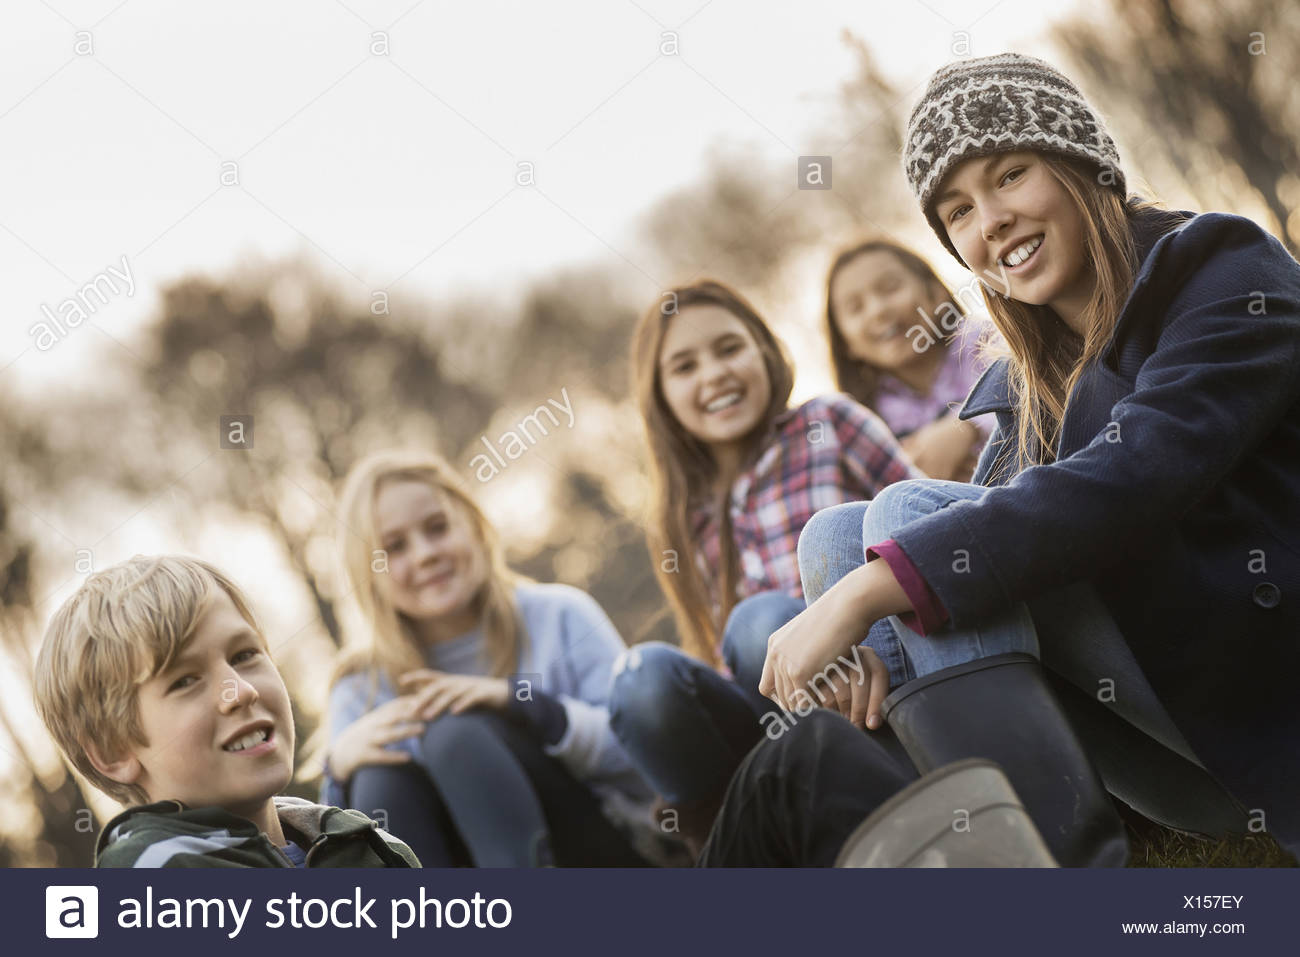 Five children on a farm Boys and girls in warm jackets outdoors - Stock Image